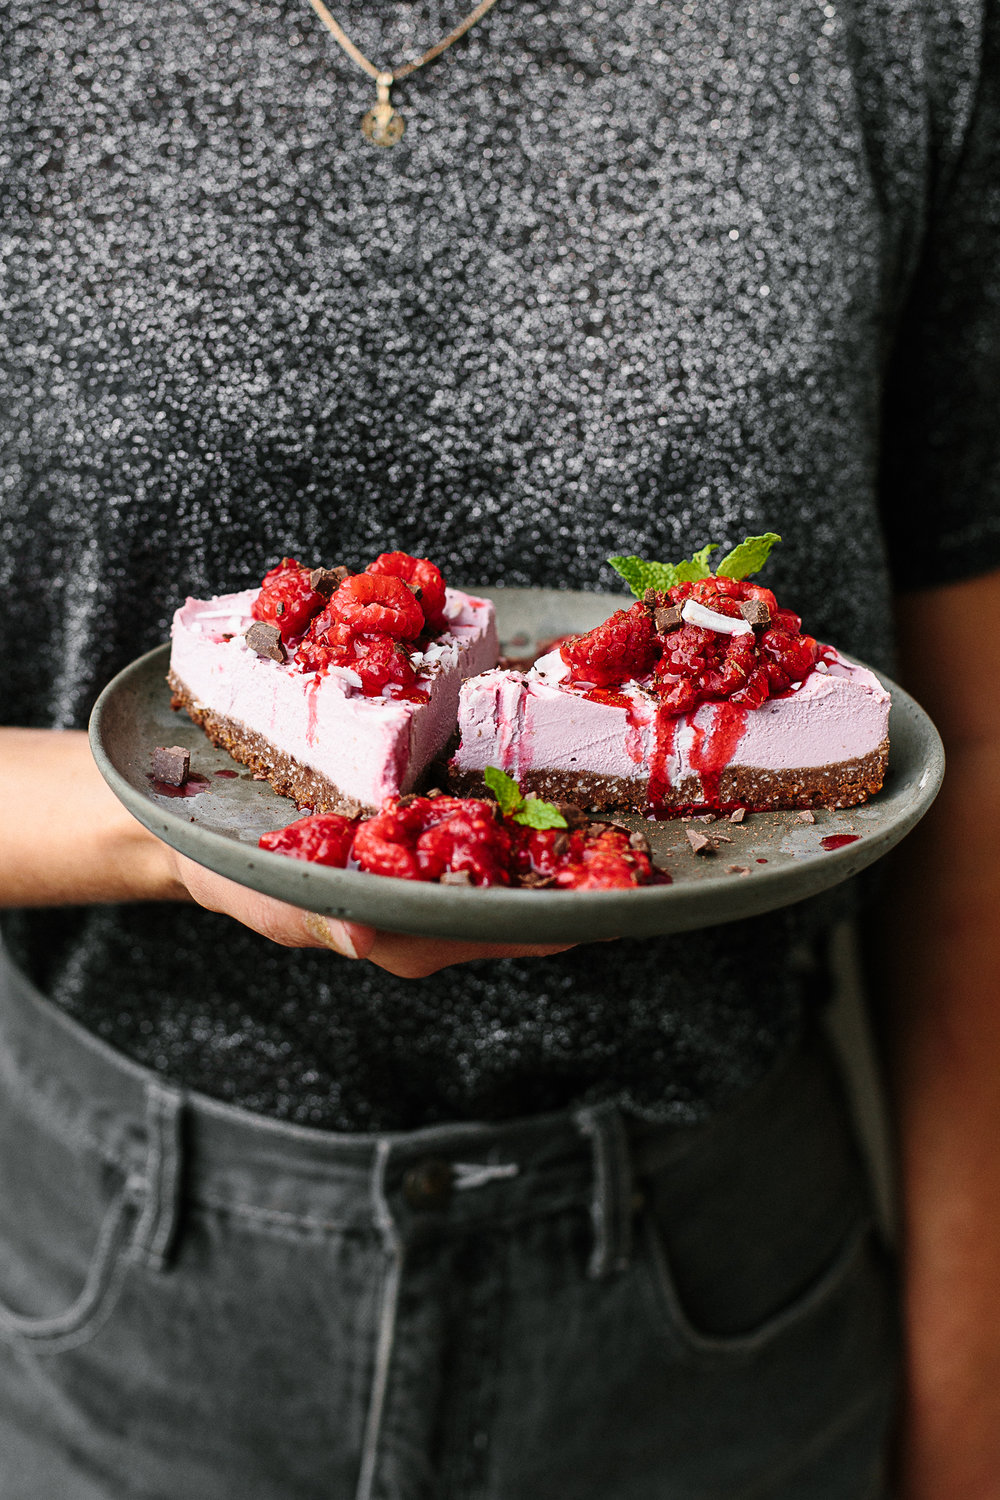 RealLifeofPie_Chocolate&Raspberry_Coconut_Cultured_Cheesecake-4.jpg